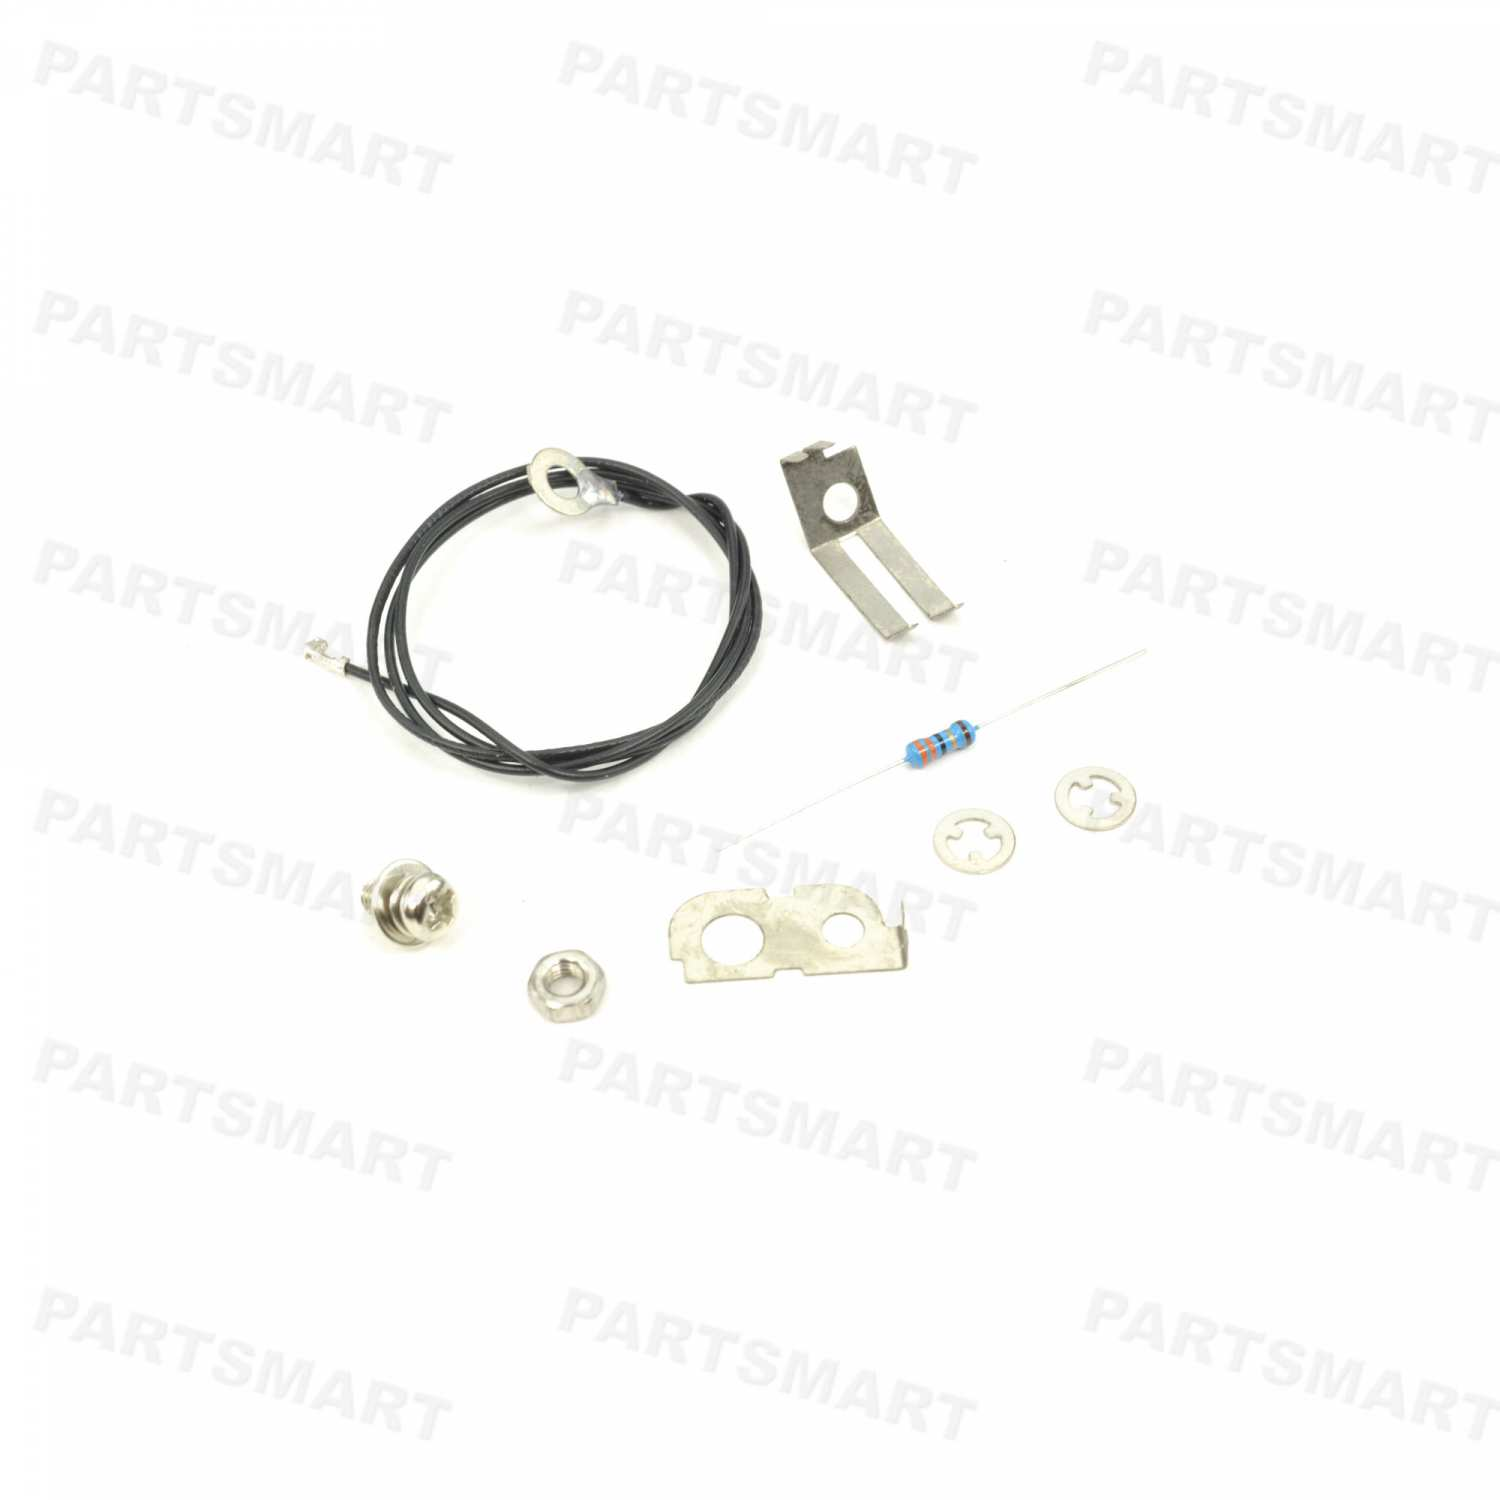 KIT-CP4525-RR Reset Resist Kit for HP Color LaserJet CP3525, Color LaserJet CP4025